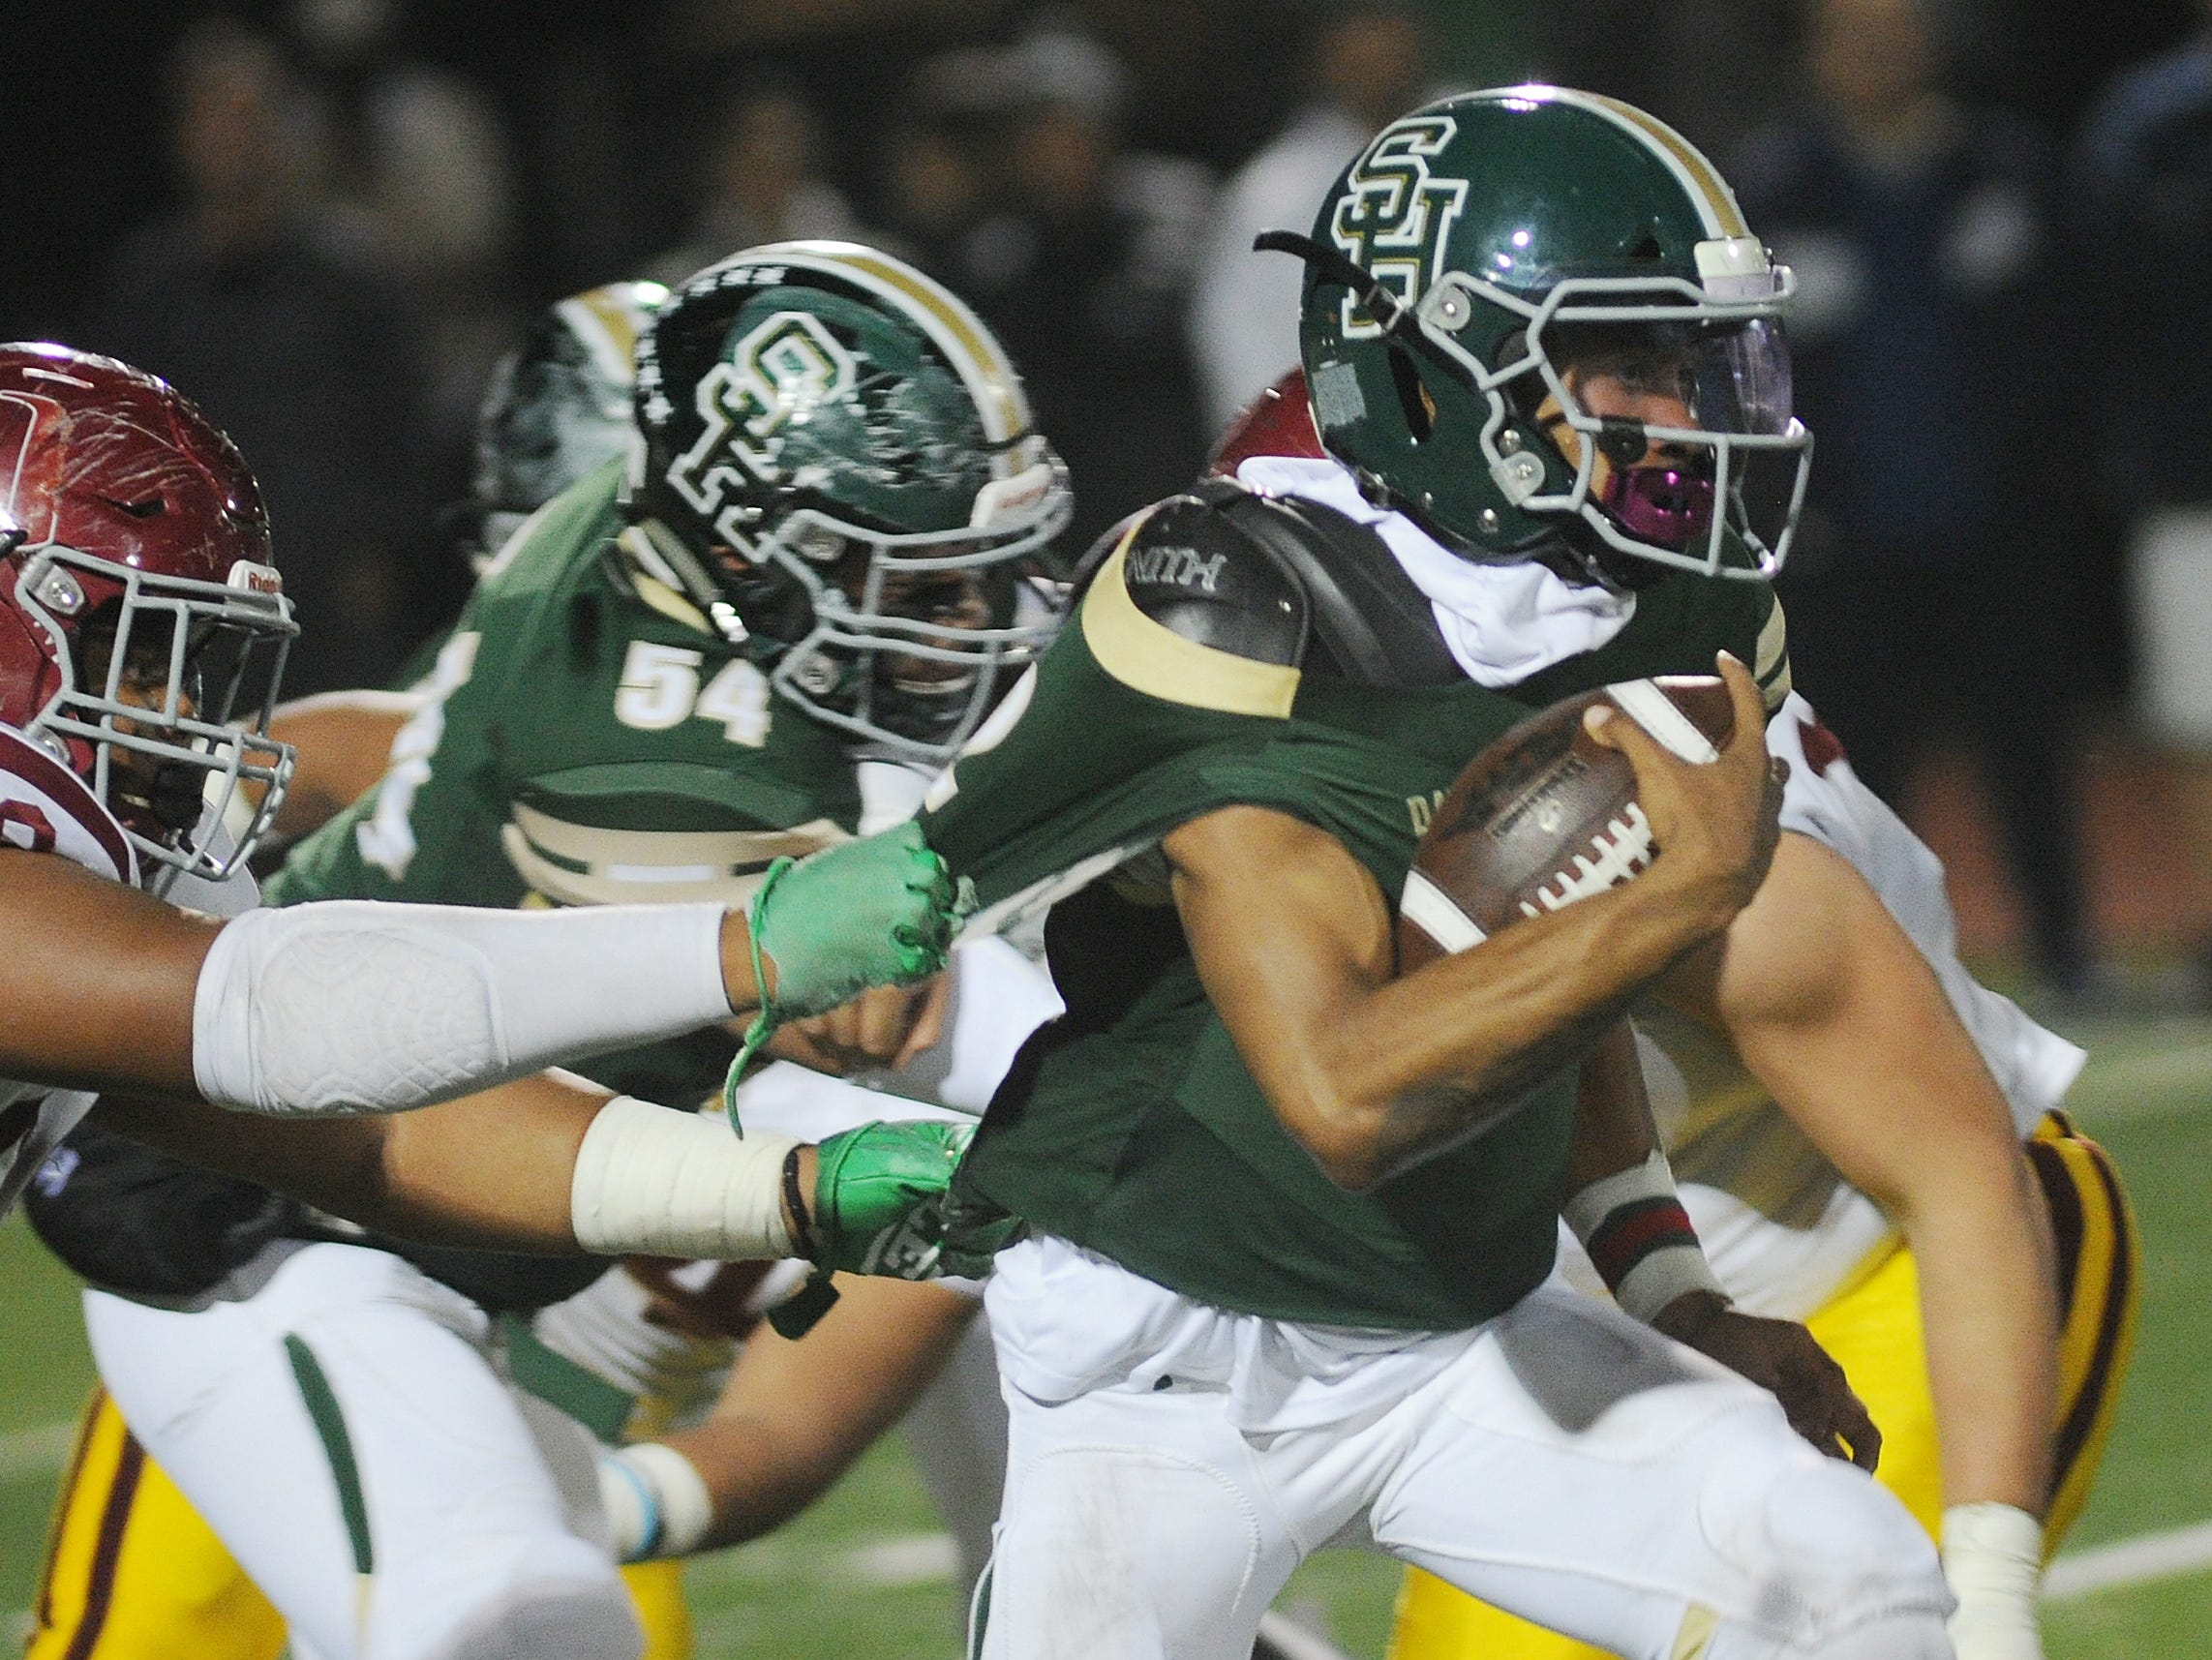 South Hills quarterback Khalil Ali, right, breaks away from an Oxnard defender during the CIF-Southern Section Division 6 championship game at Covina District Stadium on Saturday night. Oxnard lost, 24-13.